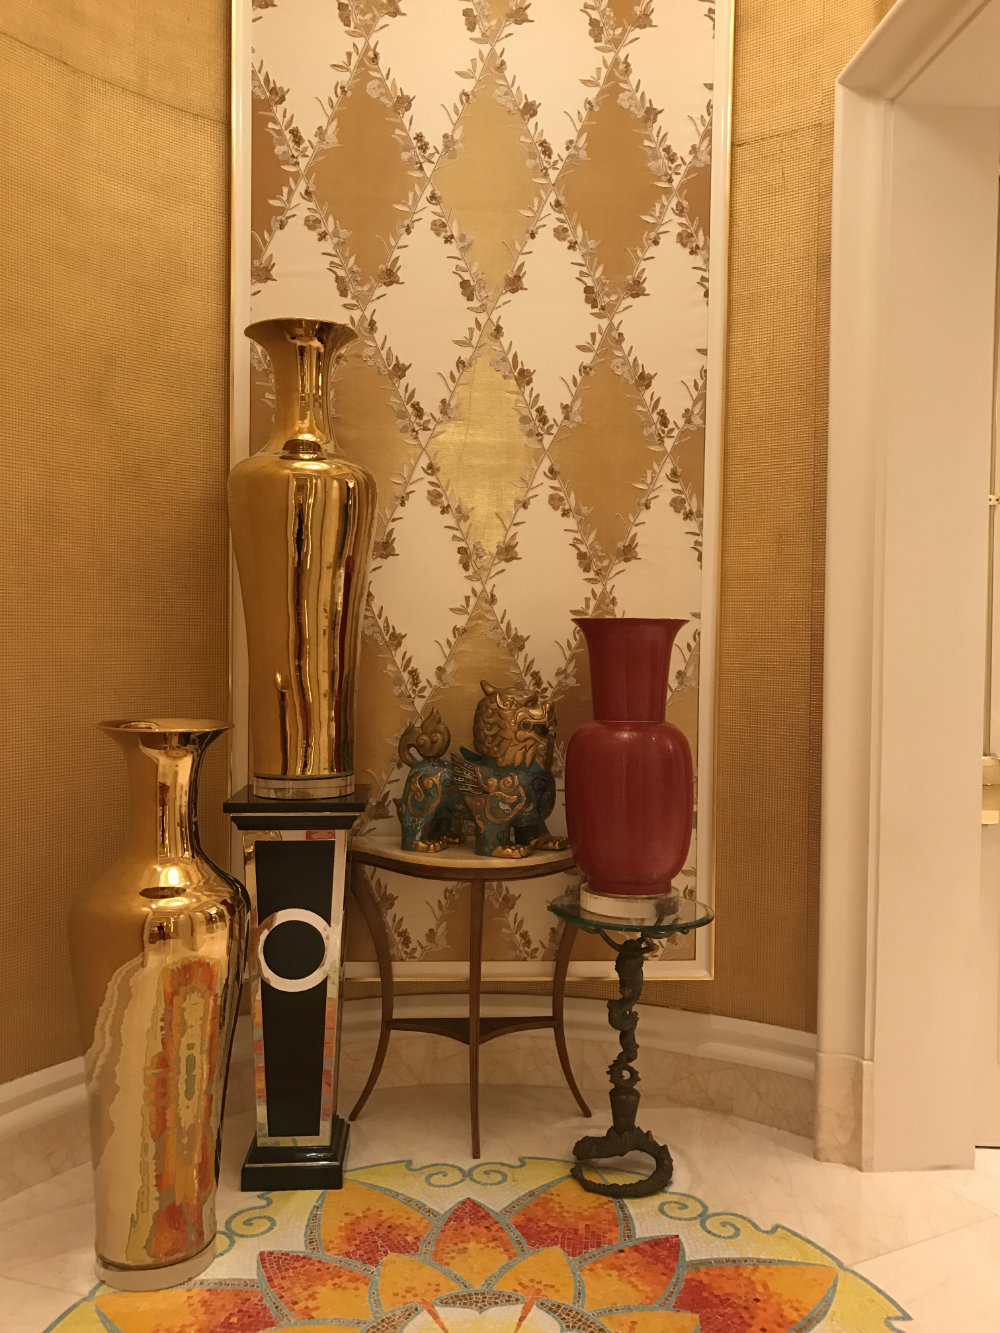 Wynn Palace Parlor Suite Review 2017 VIP 4